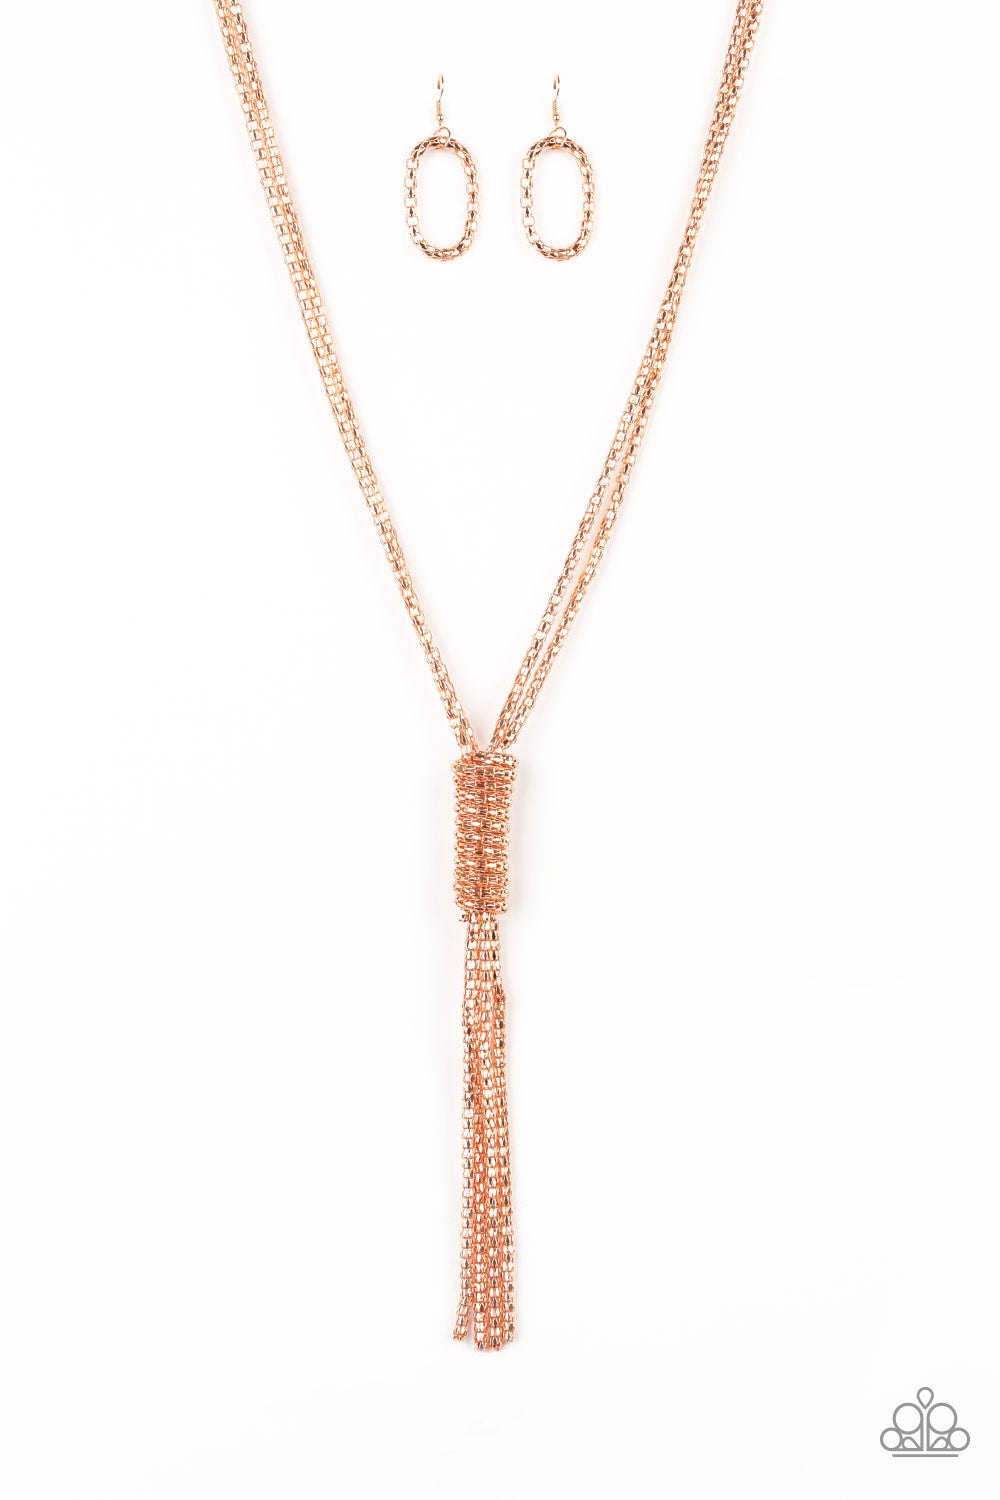 Paparazzi Accessories - Boom Boom Knock You Out - Copper Necklace Set - JMJ Jewelry Collection